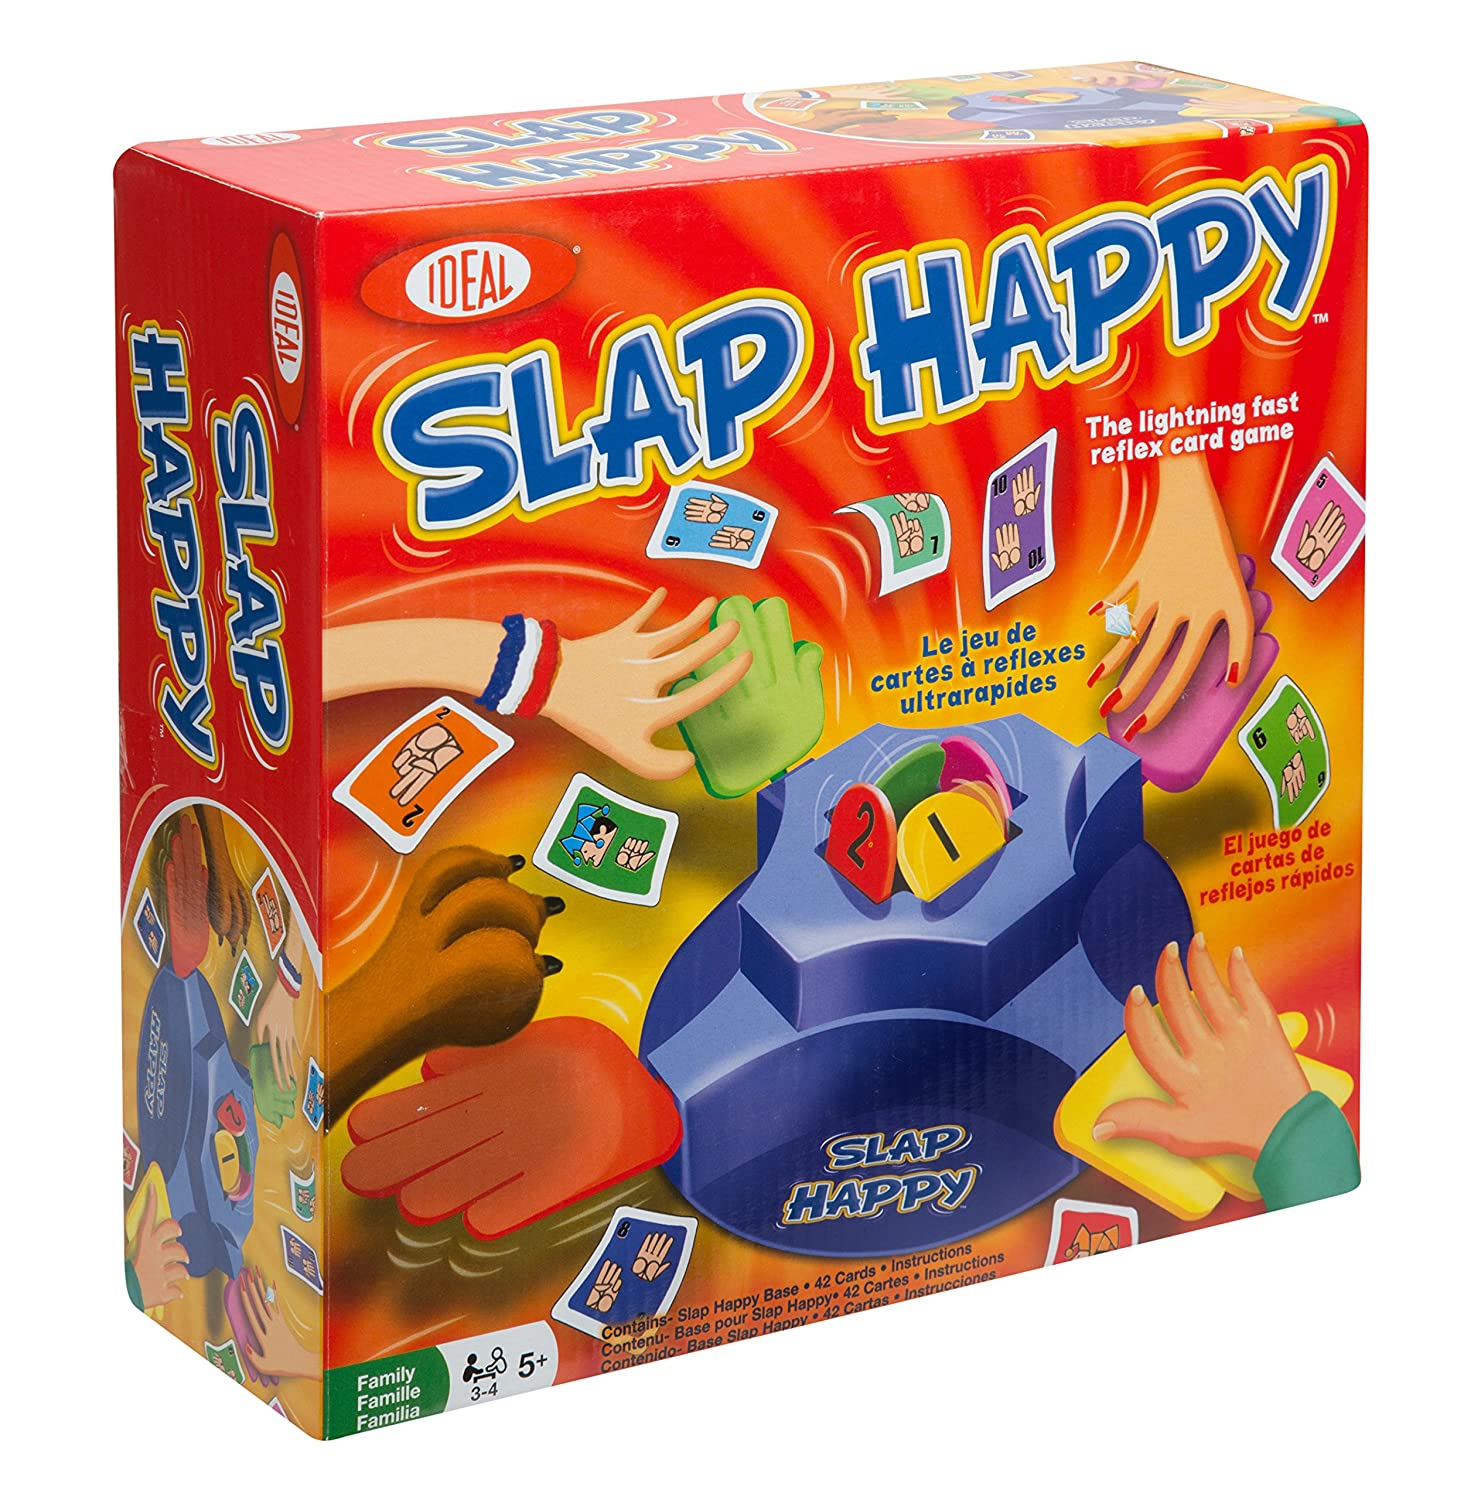 Poof Slinky 36500 Slap Happy Toy: Amazon.es: Juguetes y juegos